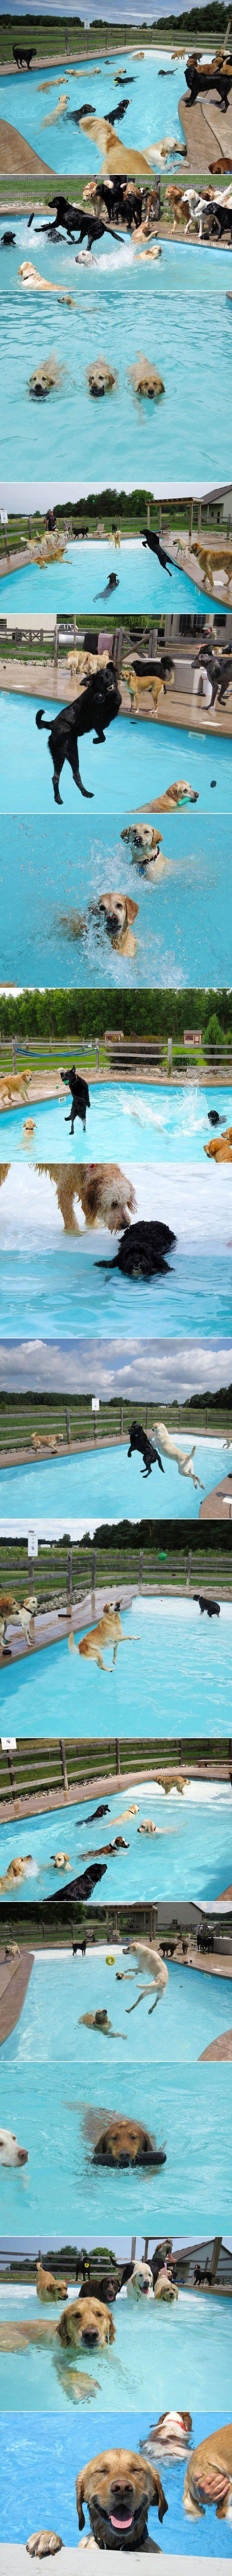 Die Hunde-Pool-Party | Webfail - Fail Bilder und Fail Videos